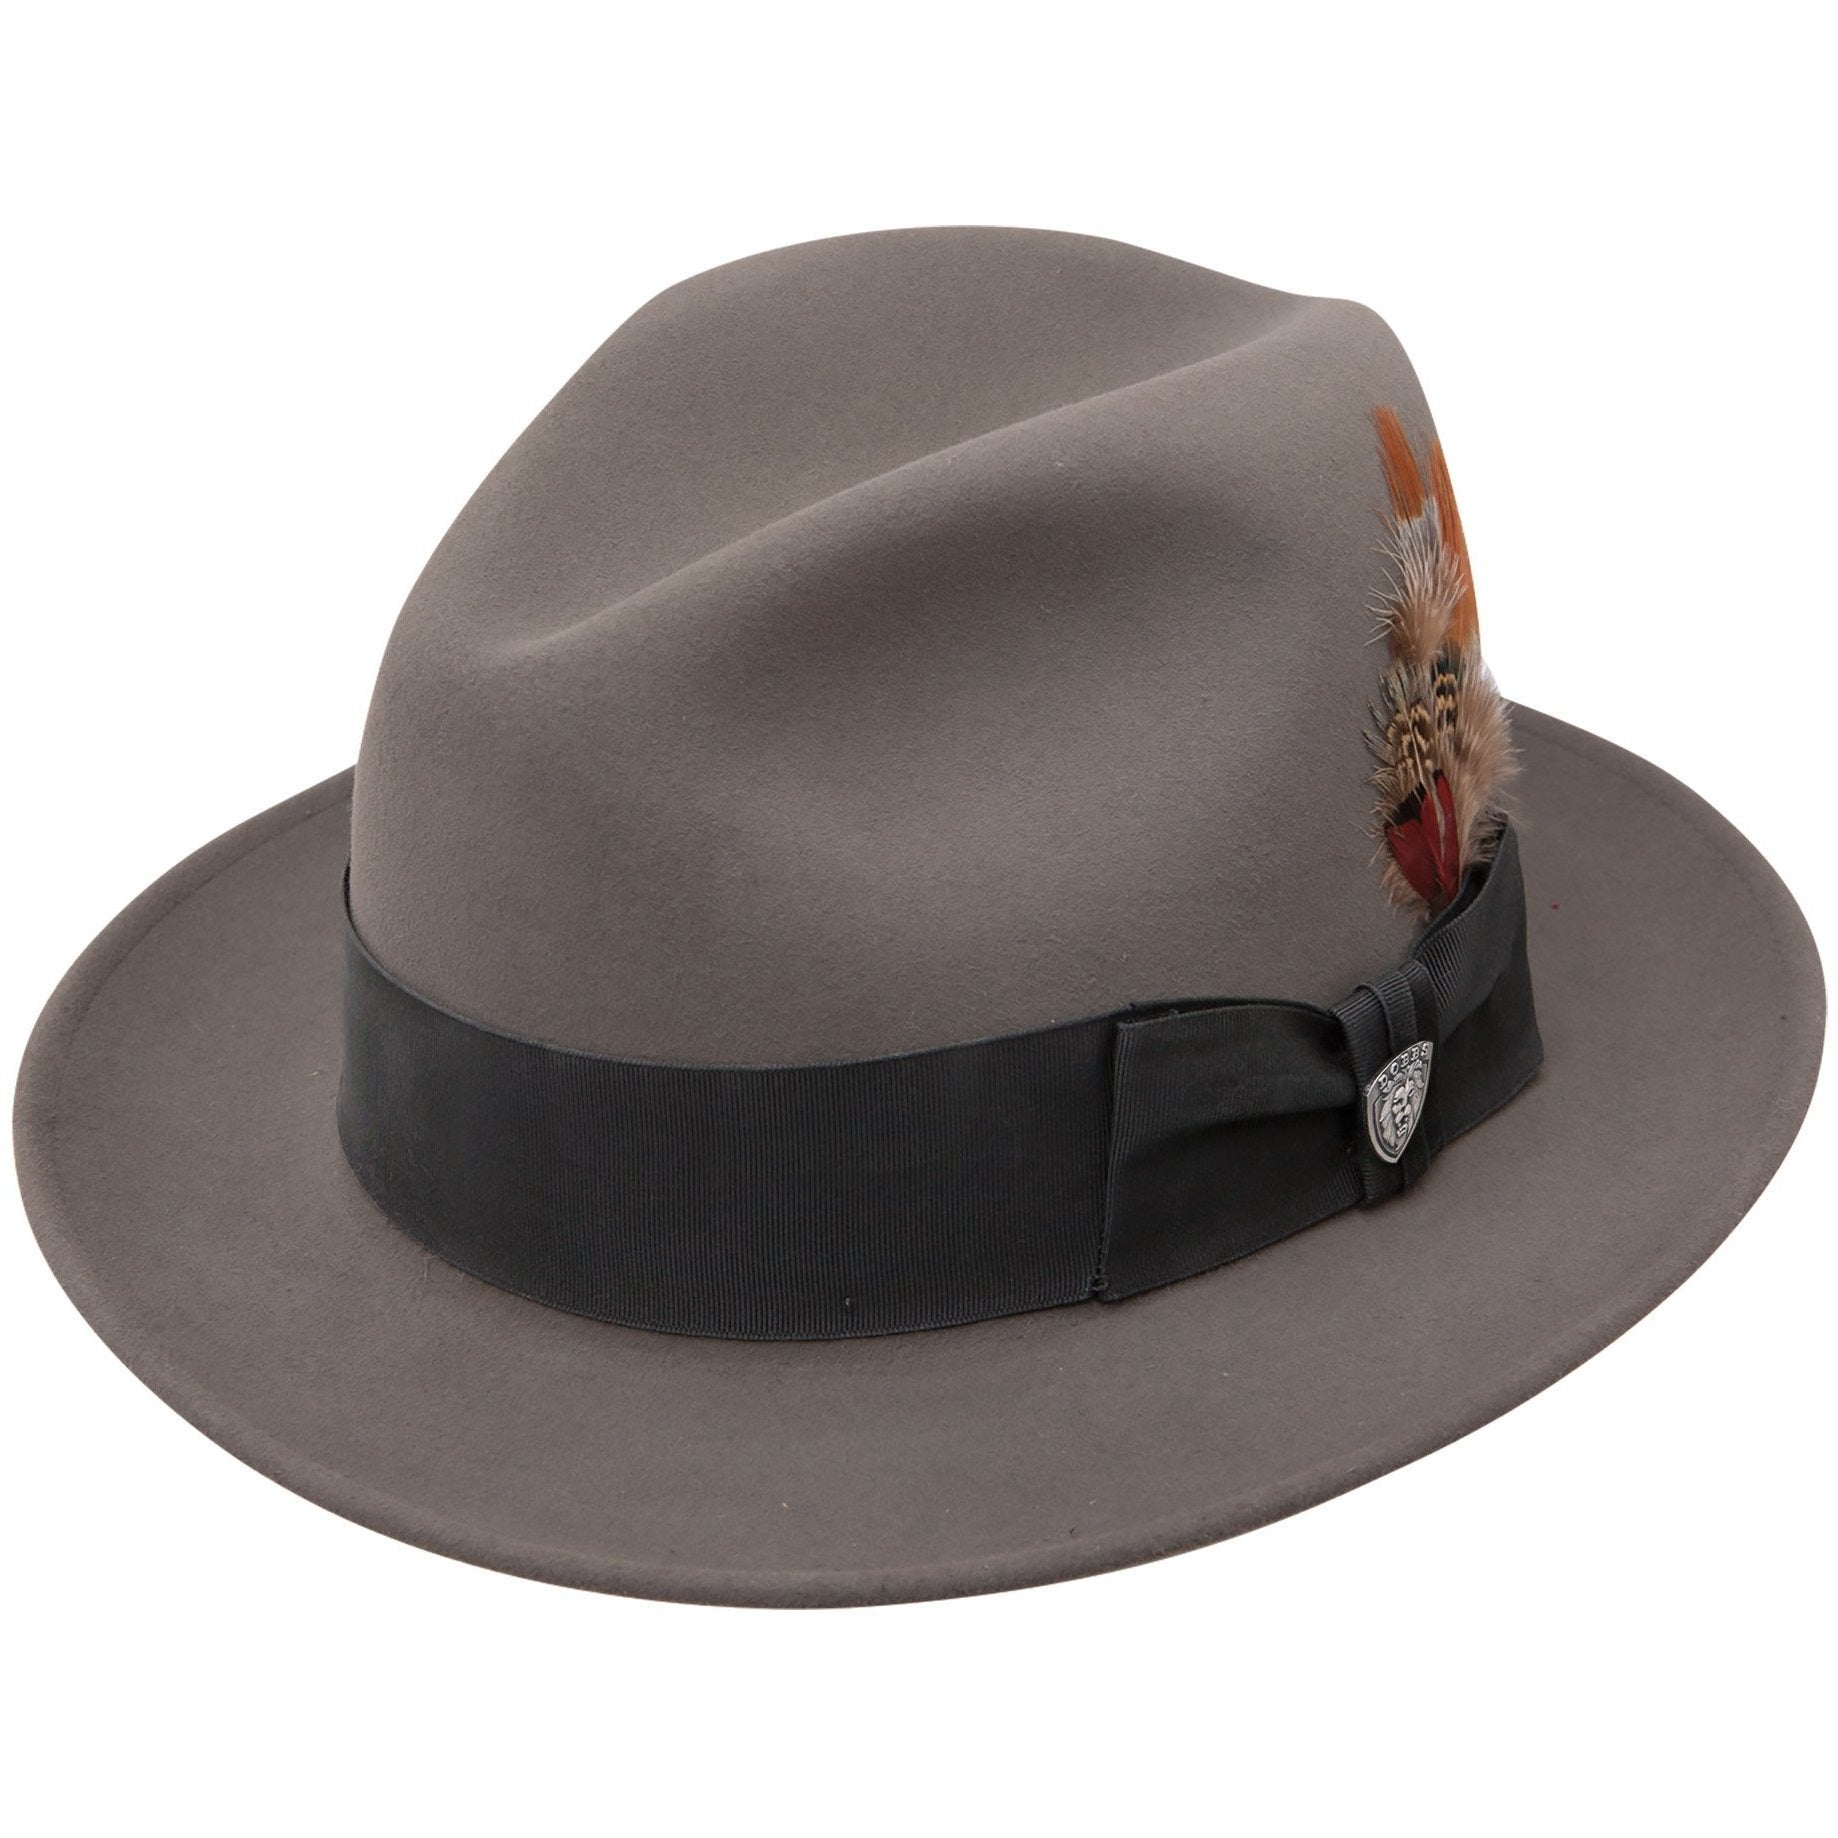 b11cdb420db49 Dayton Fur Felt Fedora by Dobbs – Levine Hat Co.